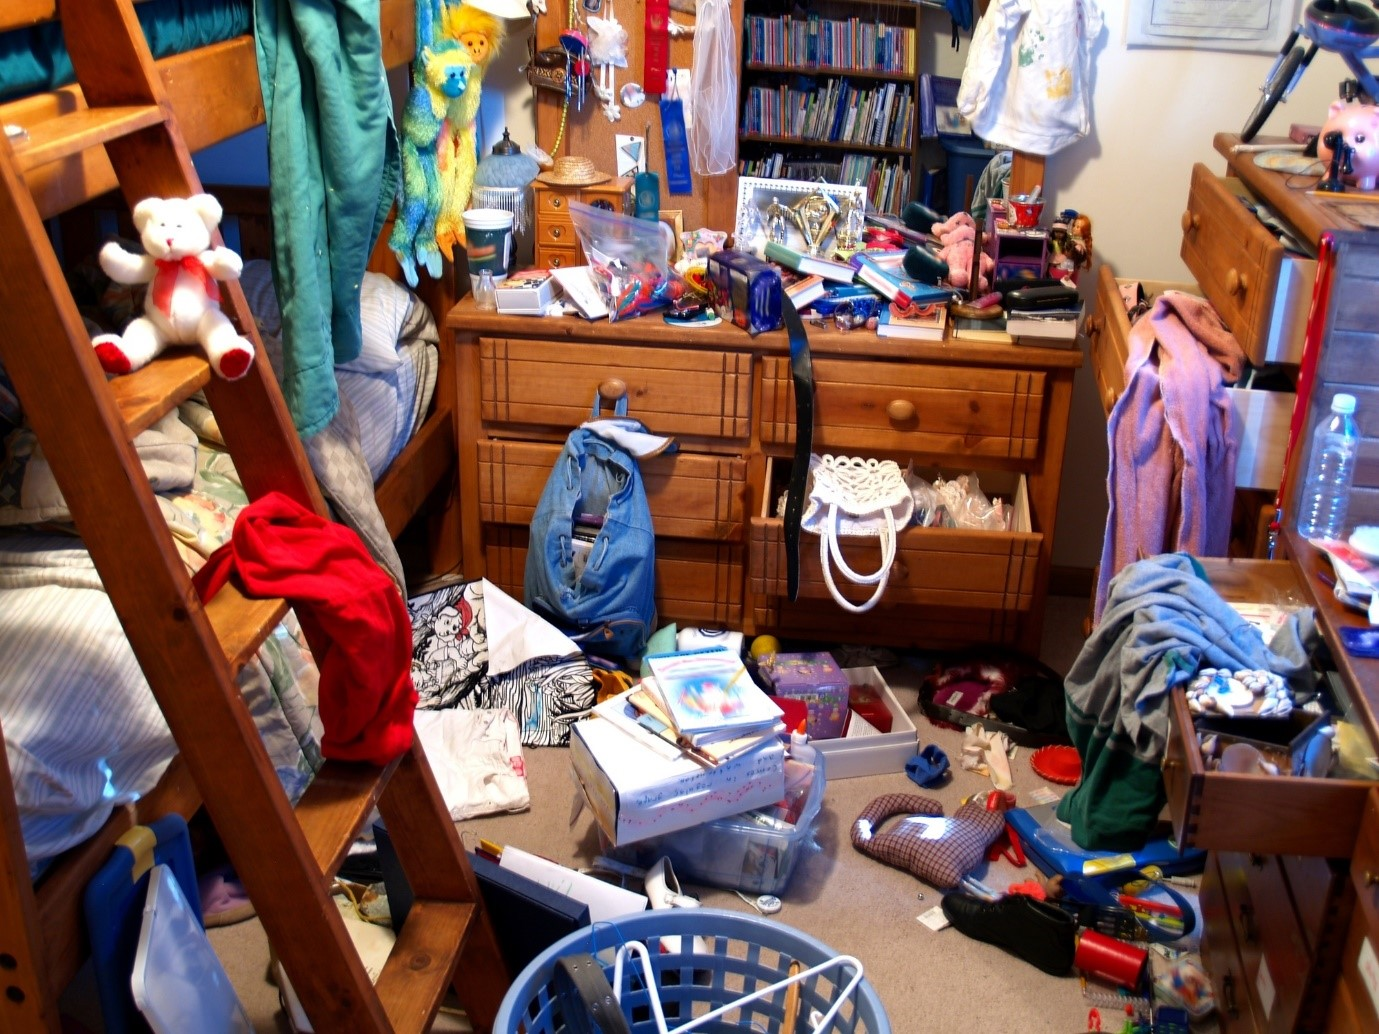 image - How to Get Rid of Stuff: 5 Tips When Getting Rid of the Clutter in Your Home